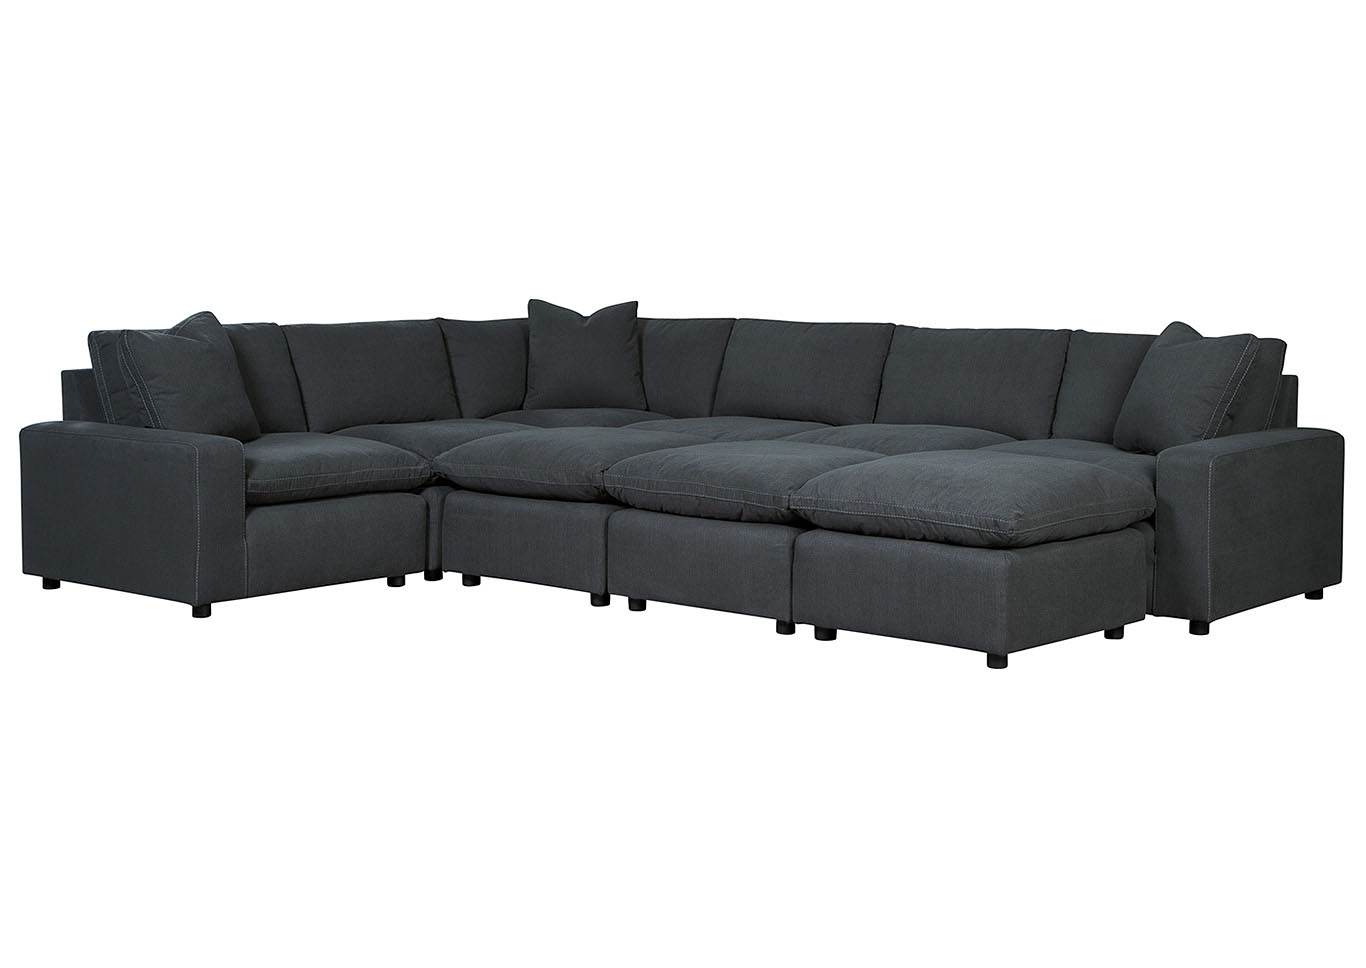 Savesto 6 Piece Sectional w/3 Ottomans